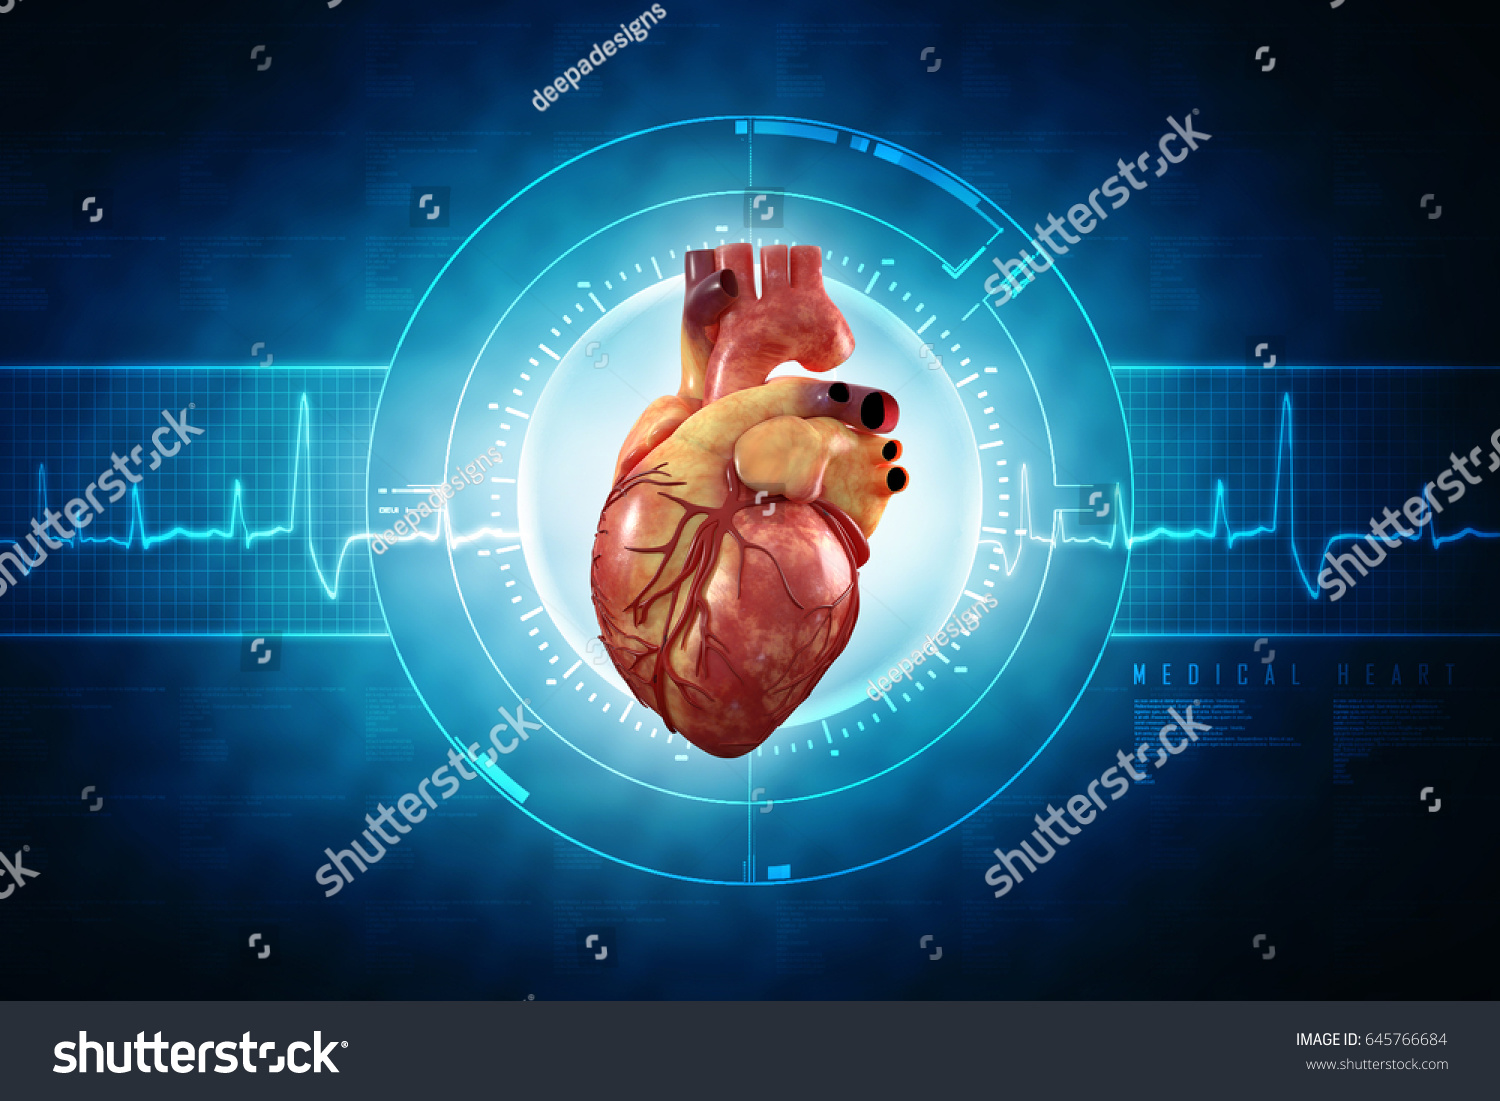 3 D Anatomy Human Heart Stock Illustration 645766684 - Shutterstock